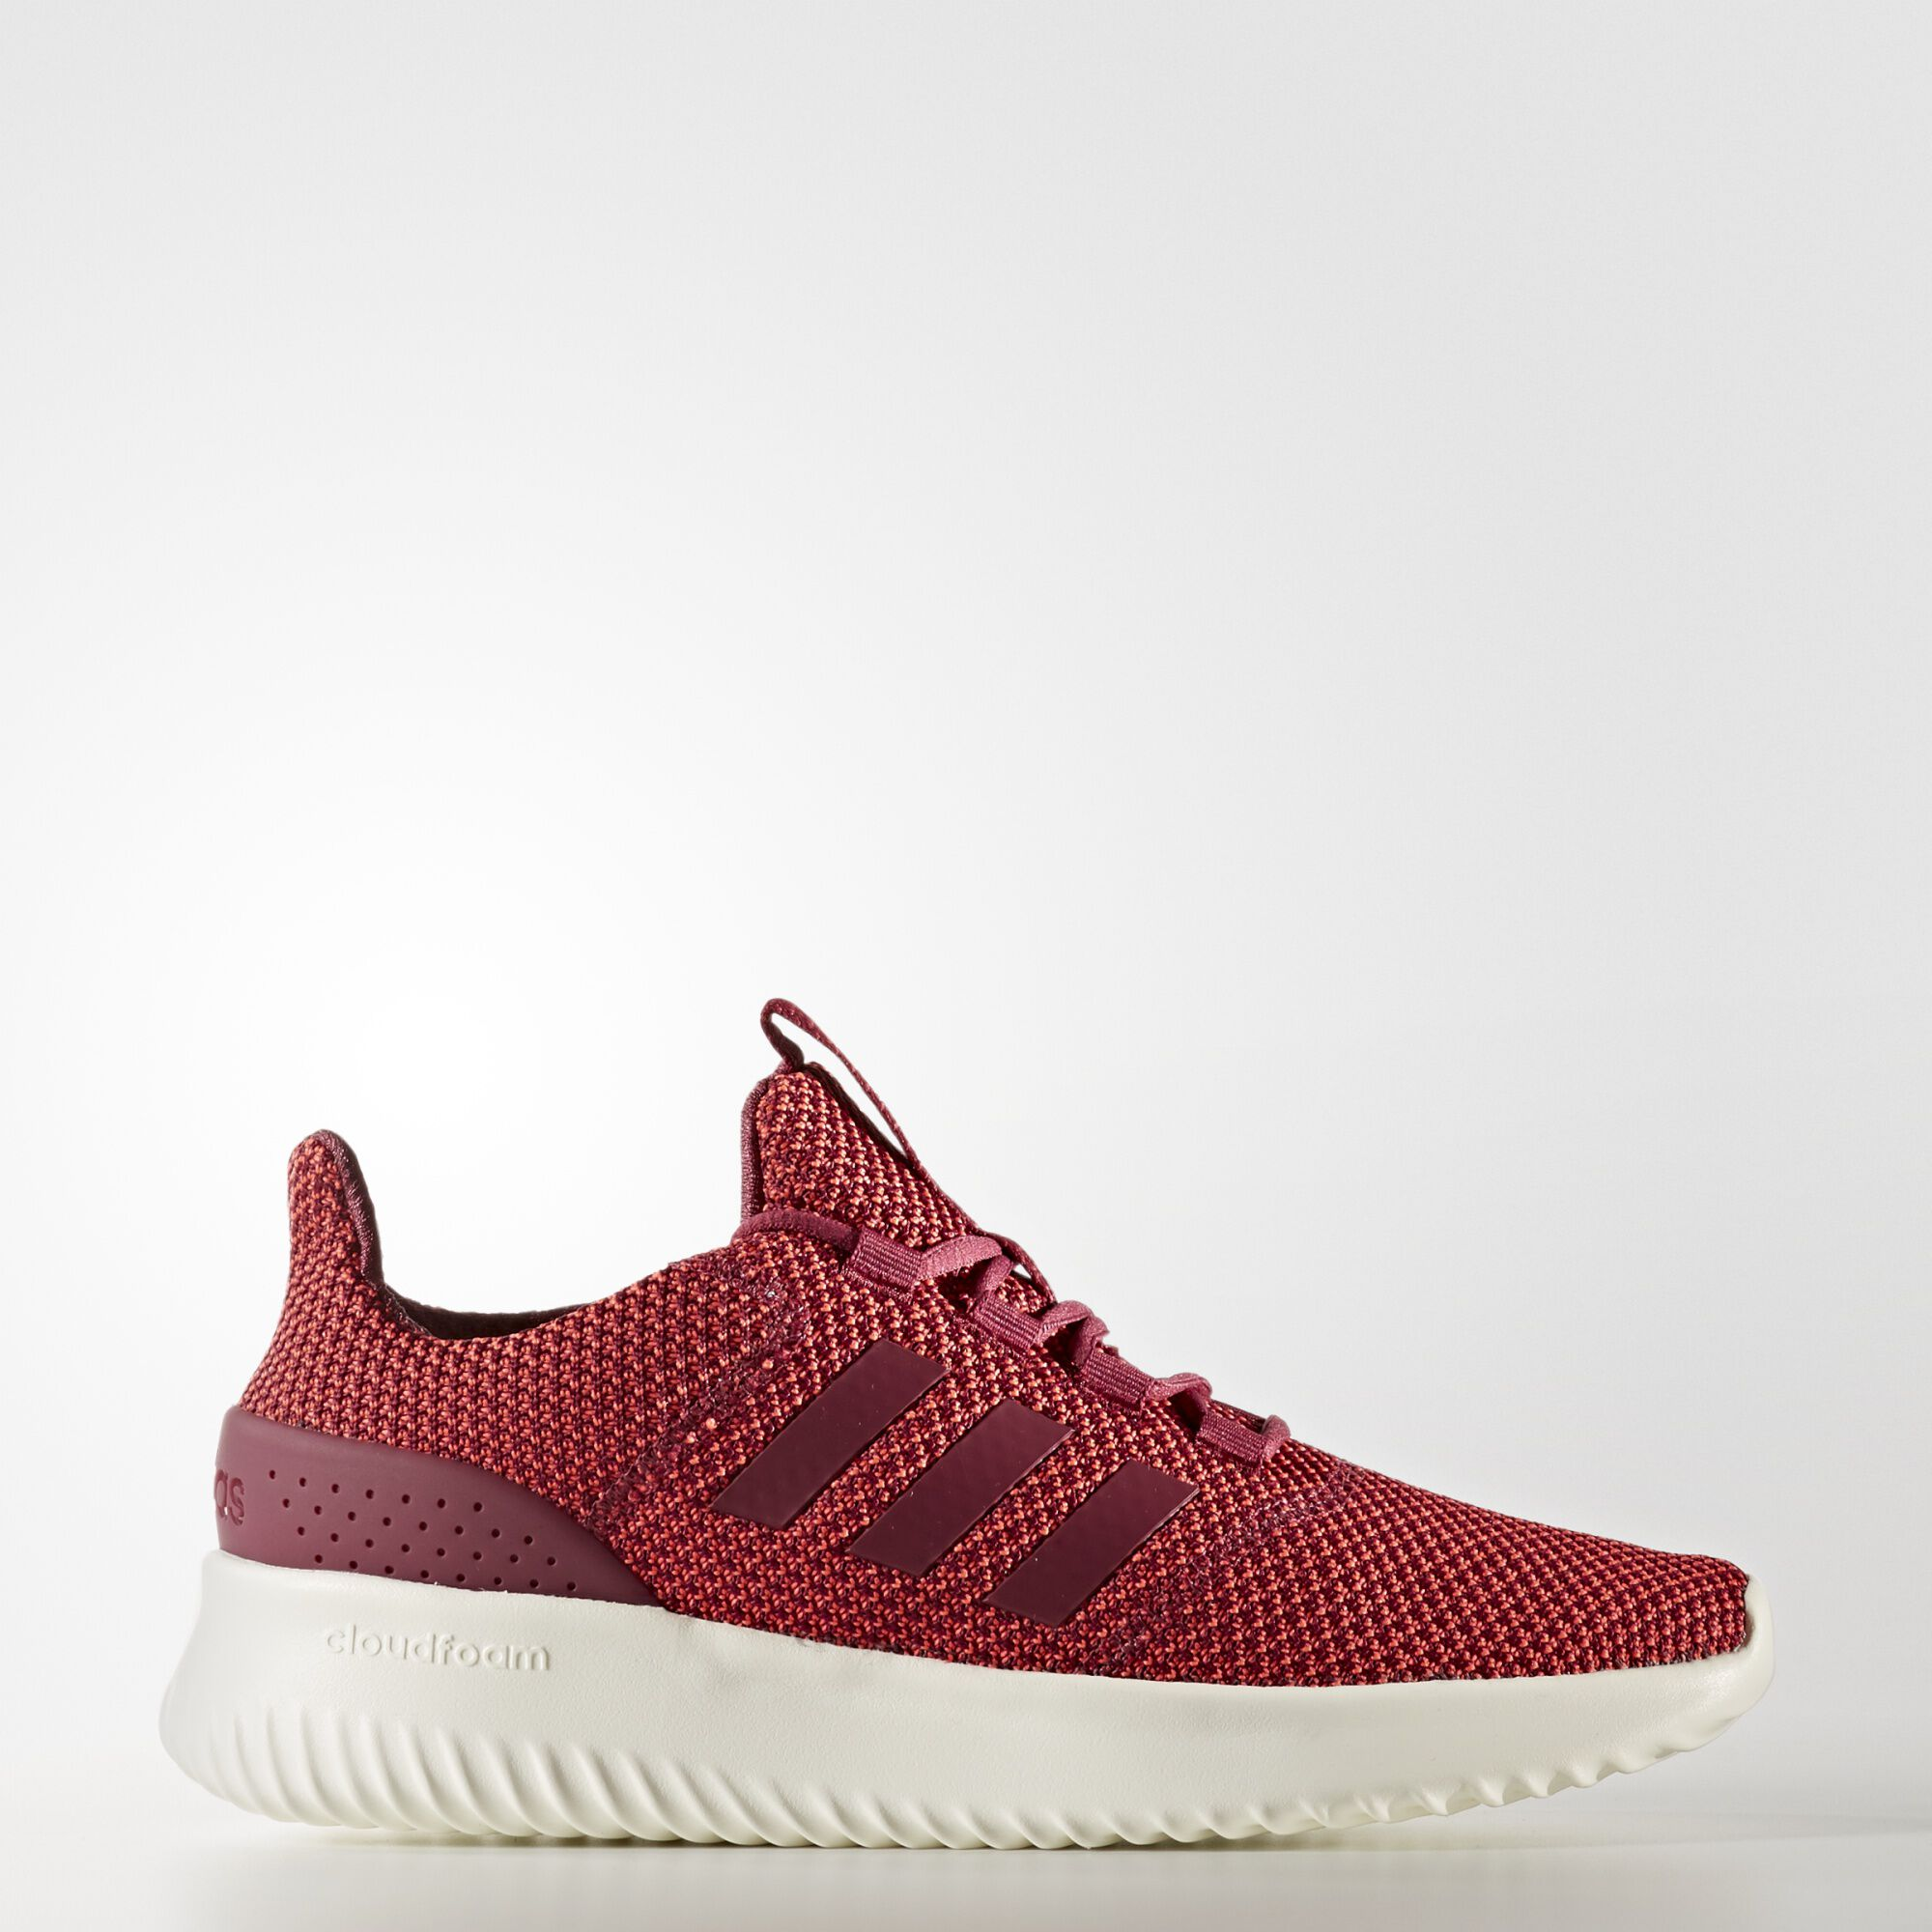 adidas - Cloudfoam Ultimate Shoes Shock Red / Chalk White BC0035